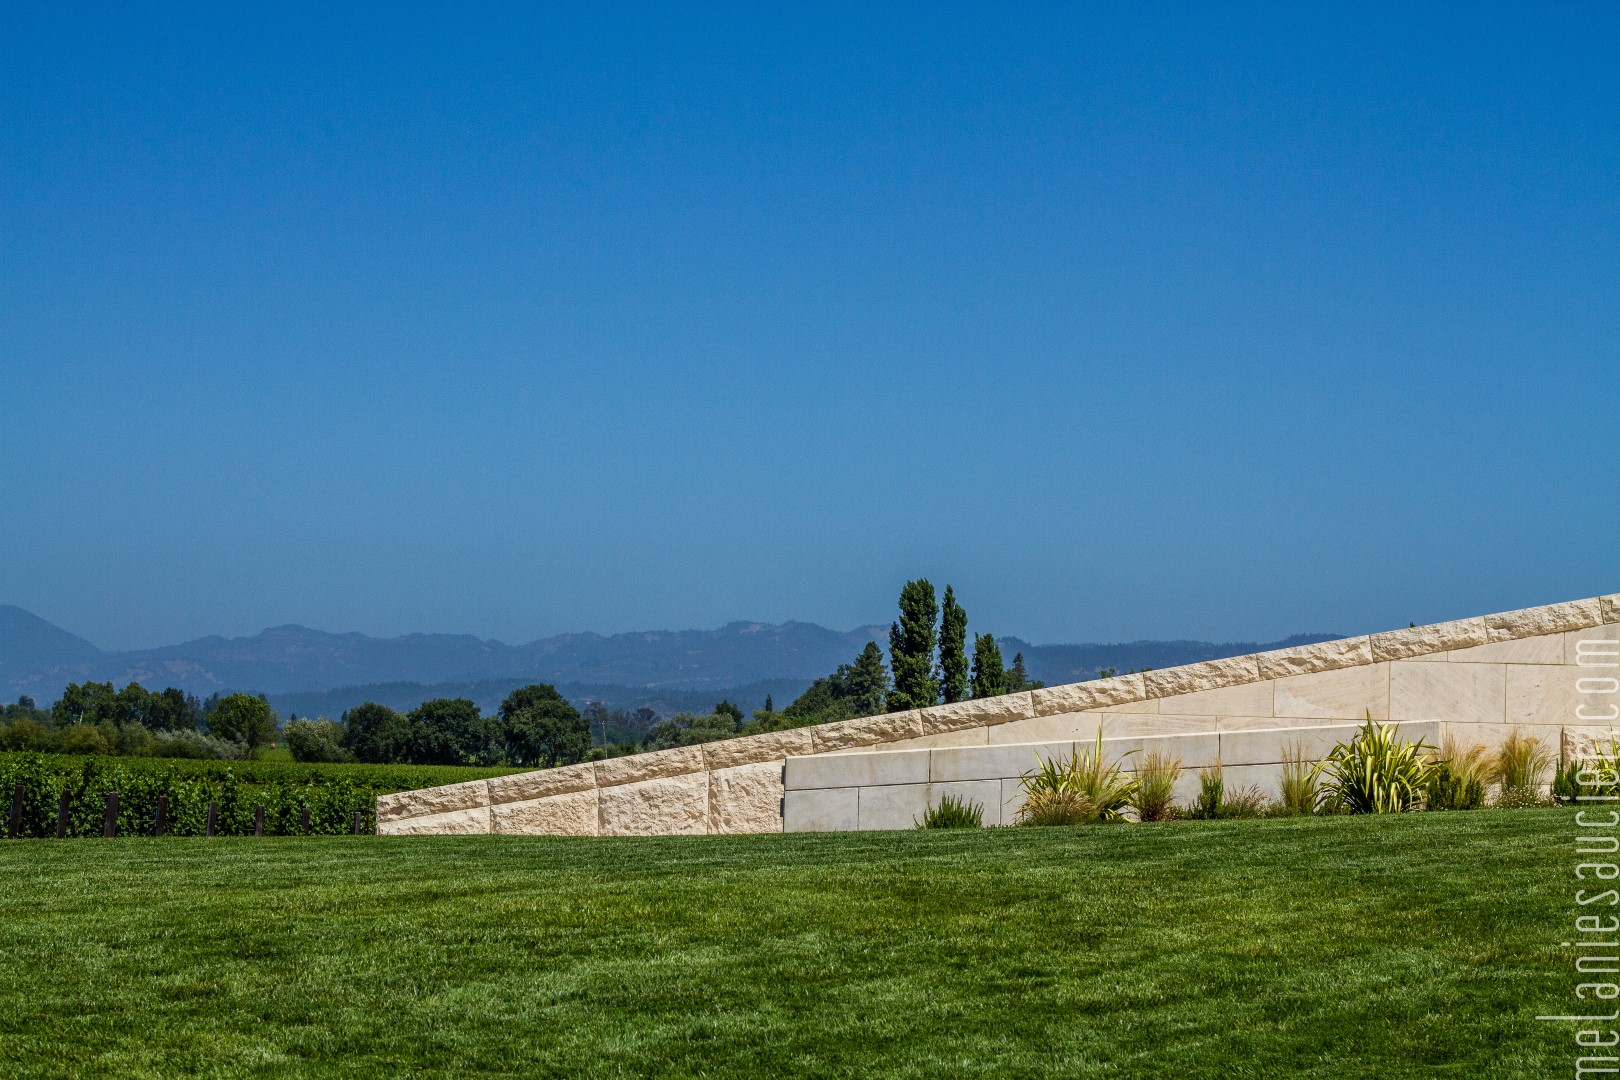 OpusOne_Winery-5 (Large).jpg